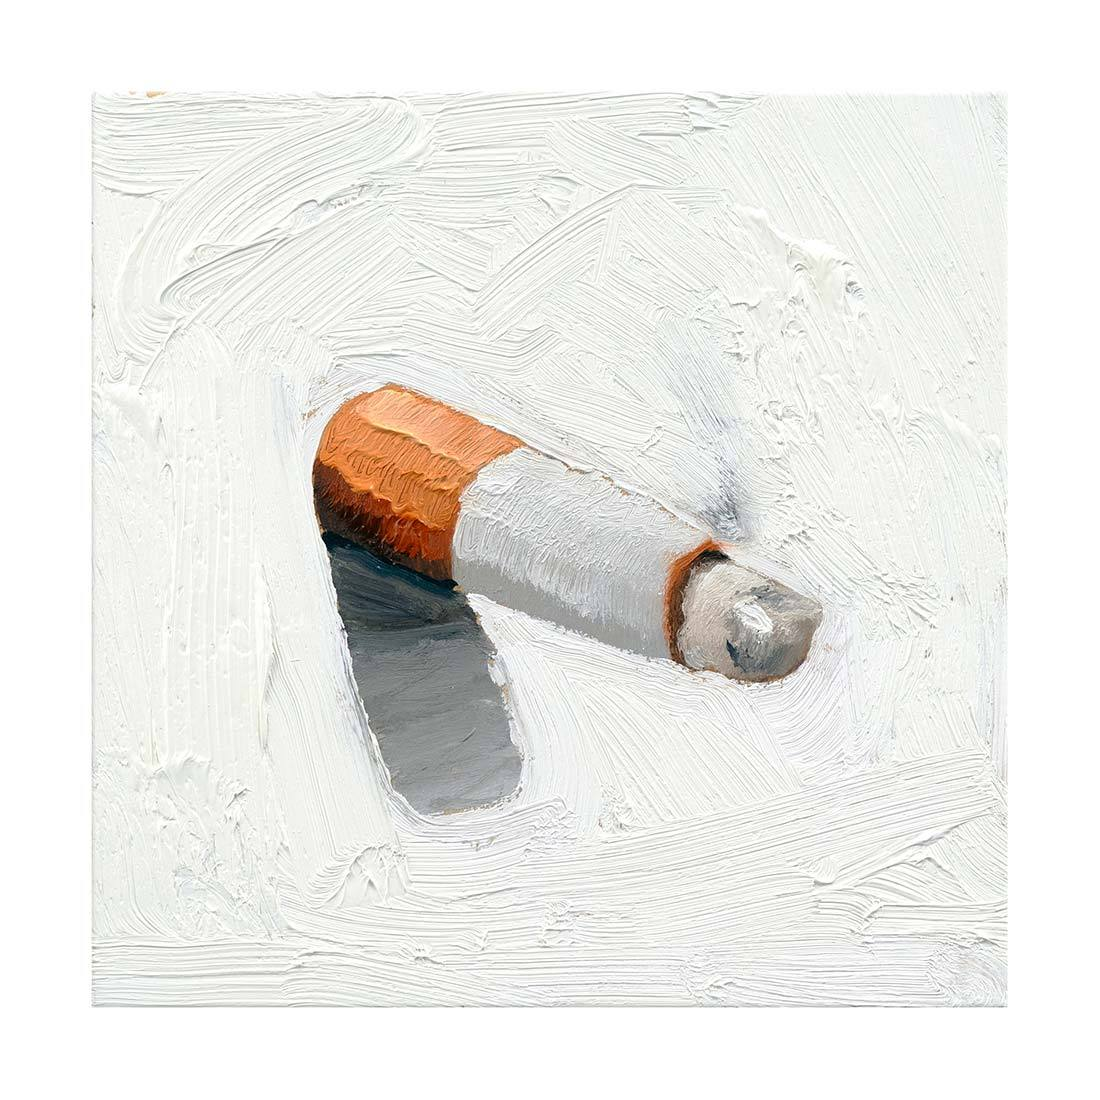 Cigarette Study No. 8